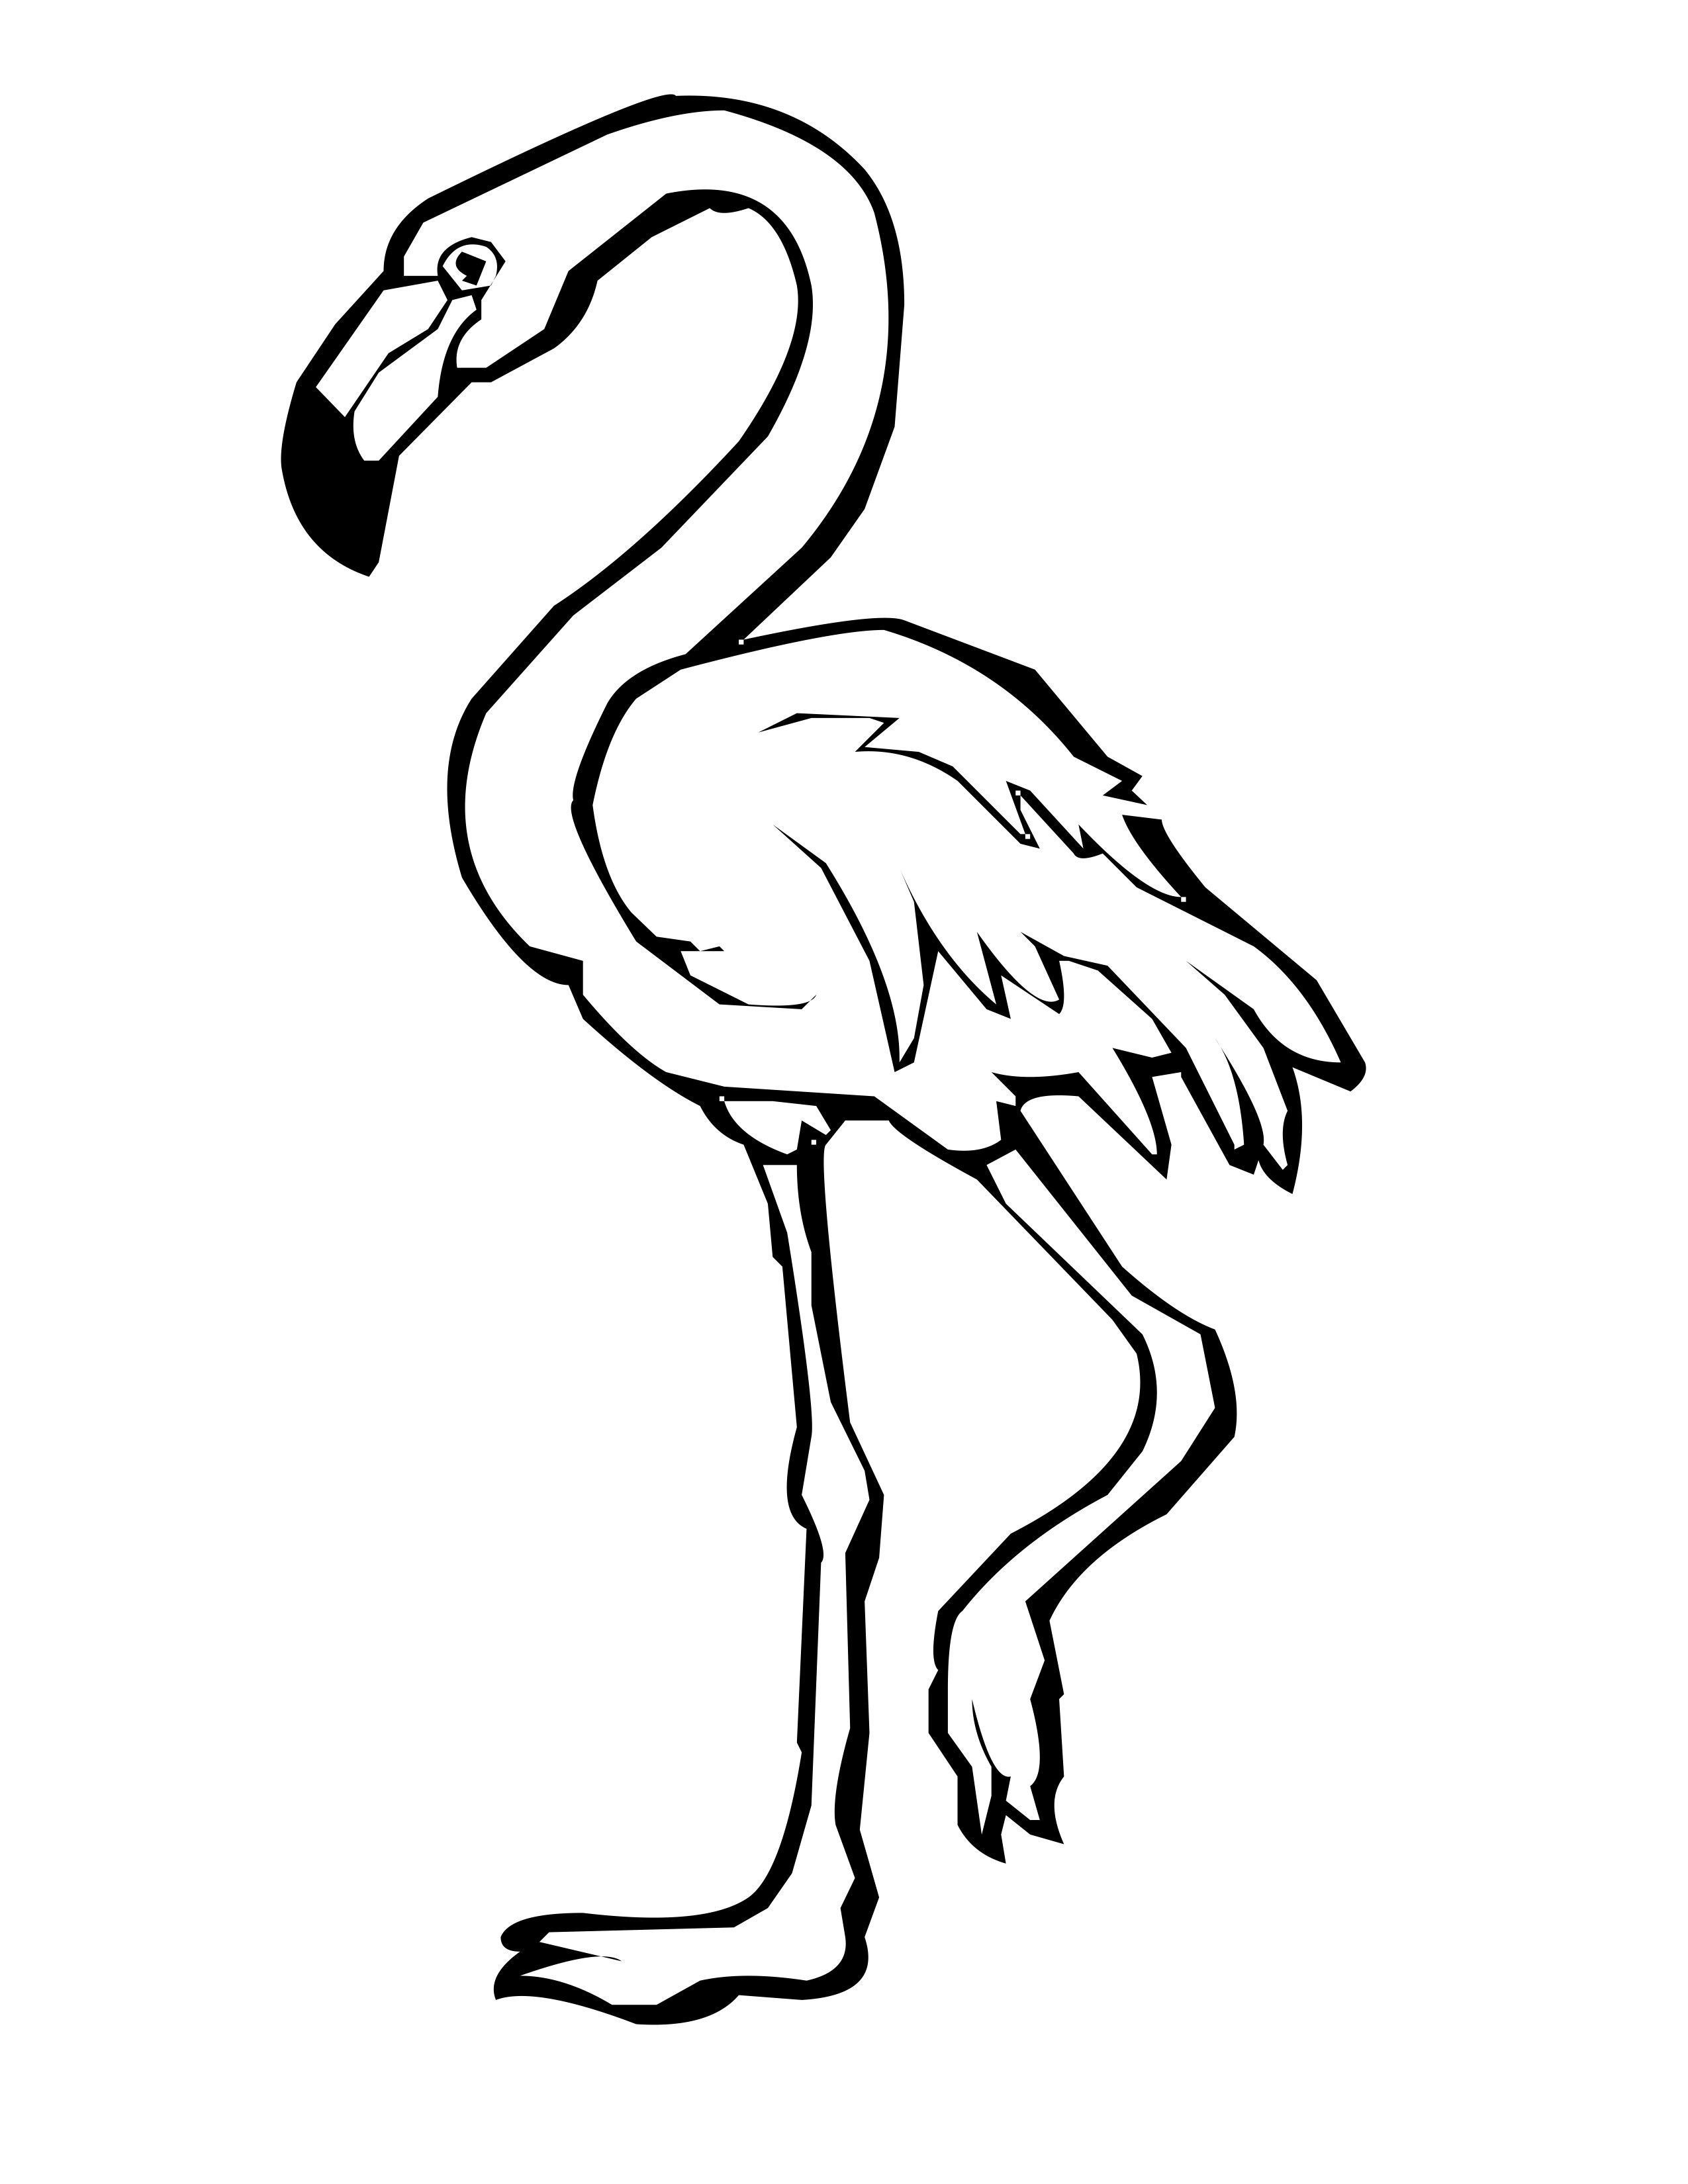 pictures of flamingos to color kids printable flamingo coloring page the graphics fairy pictures flamingos of color to